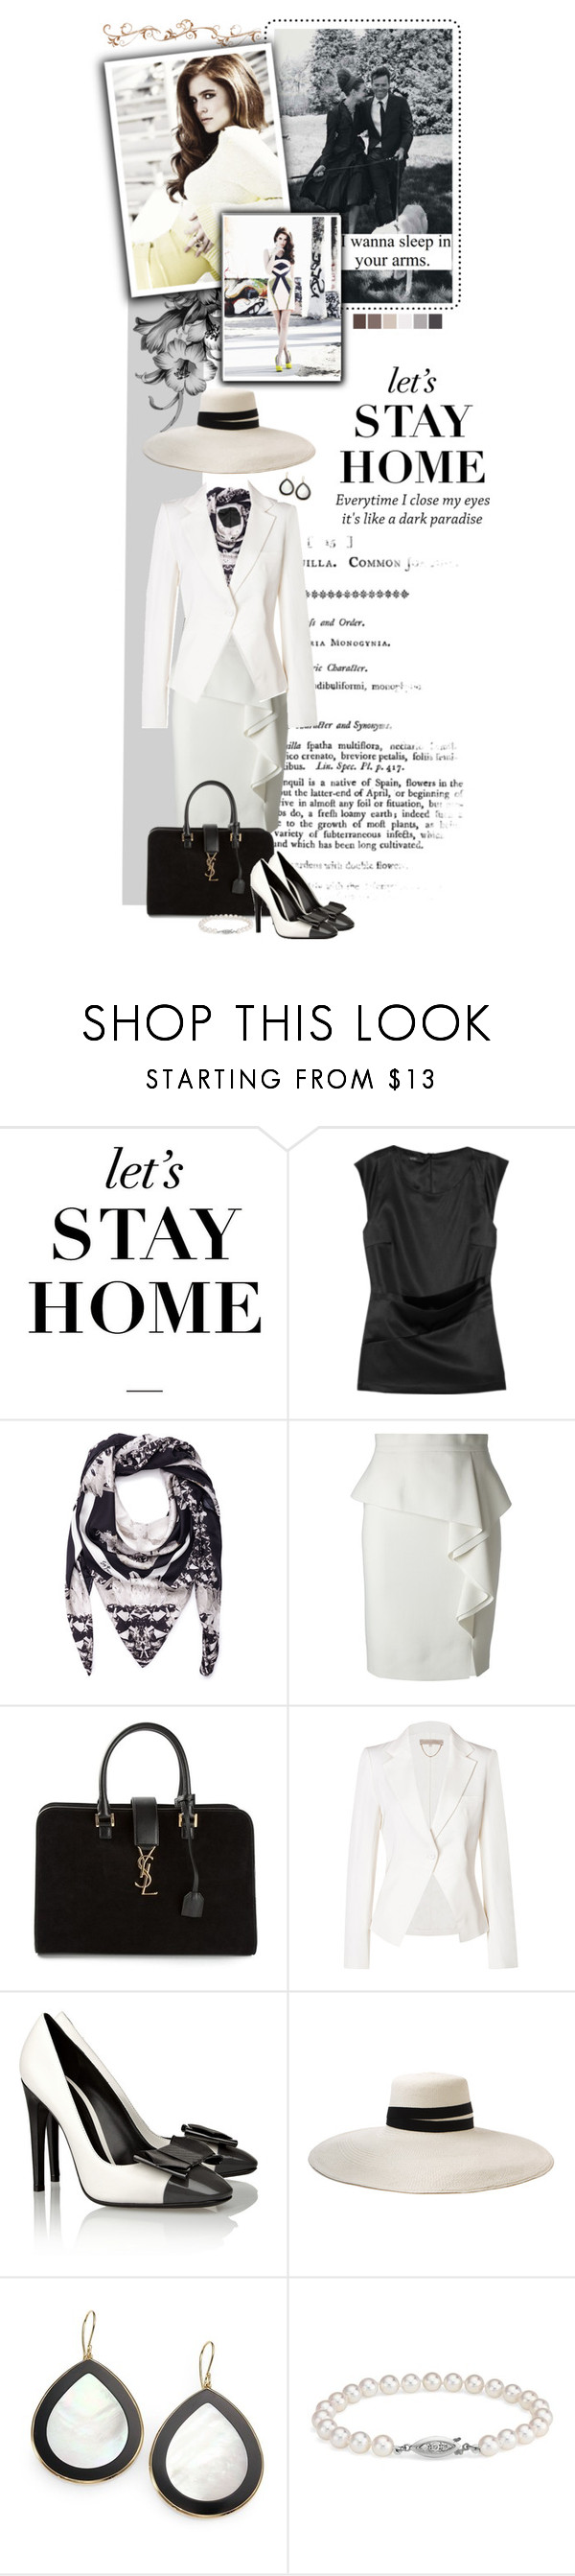 """Dark Paradise"" by alexvishnevskaya ❤ liked on Polyvore featuring Etro, St. Piece, Emilio Pucci, Yves Saint Laurent, Vanessa Bruno, Bottega Veneta, Gigi Burris Millinery, Seed Design, Ippolita and Blue Nile"